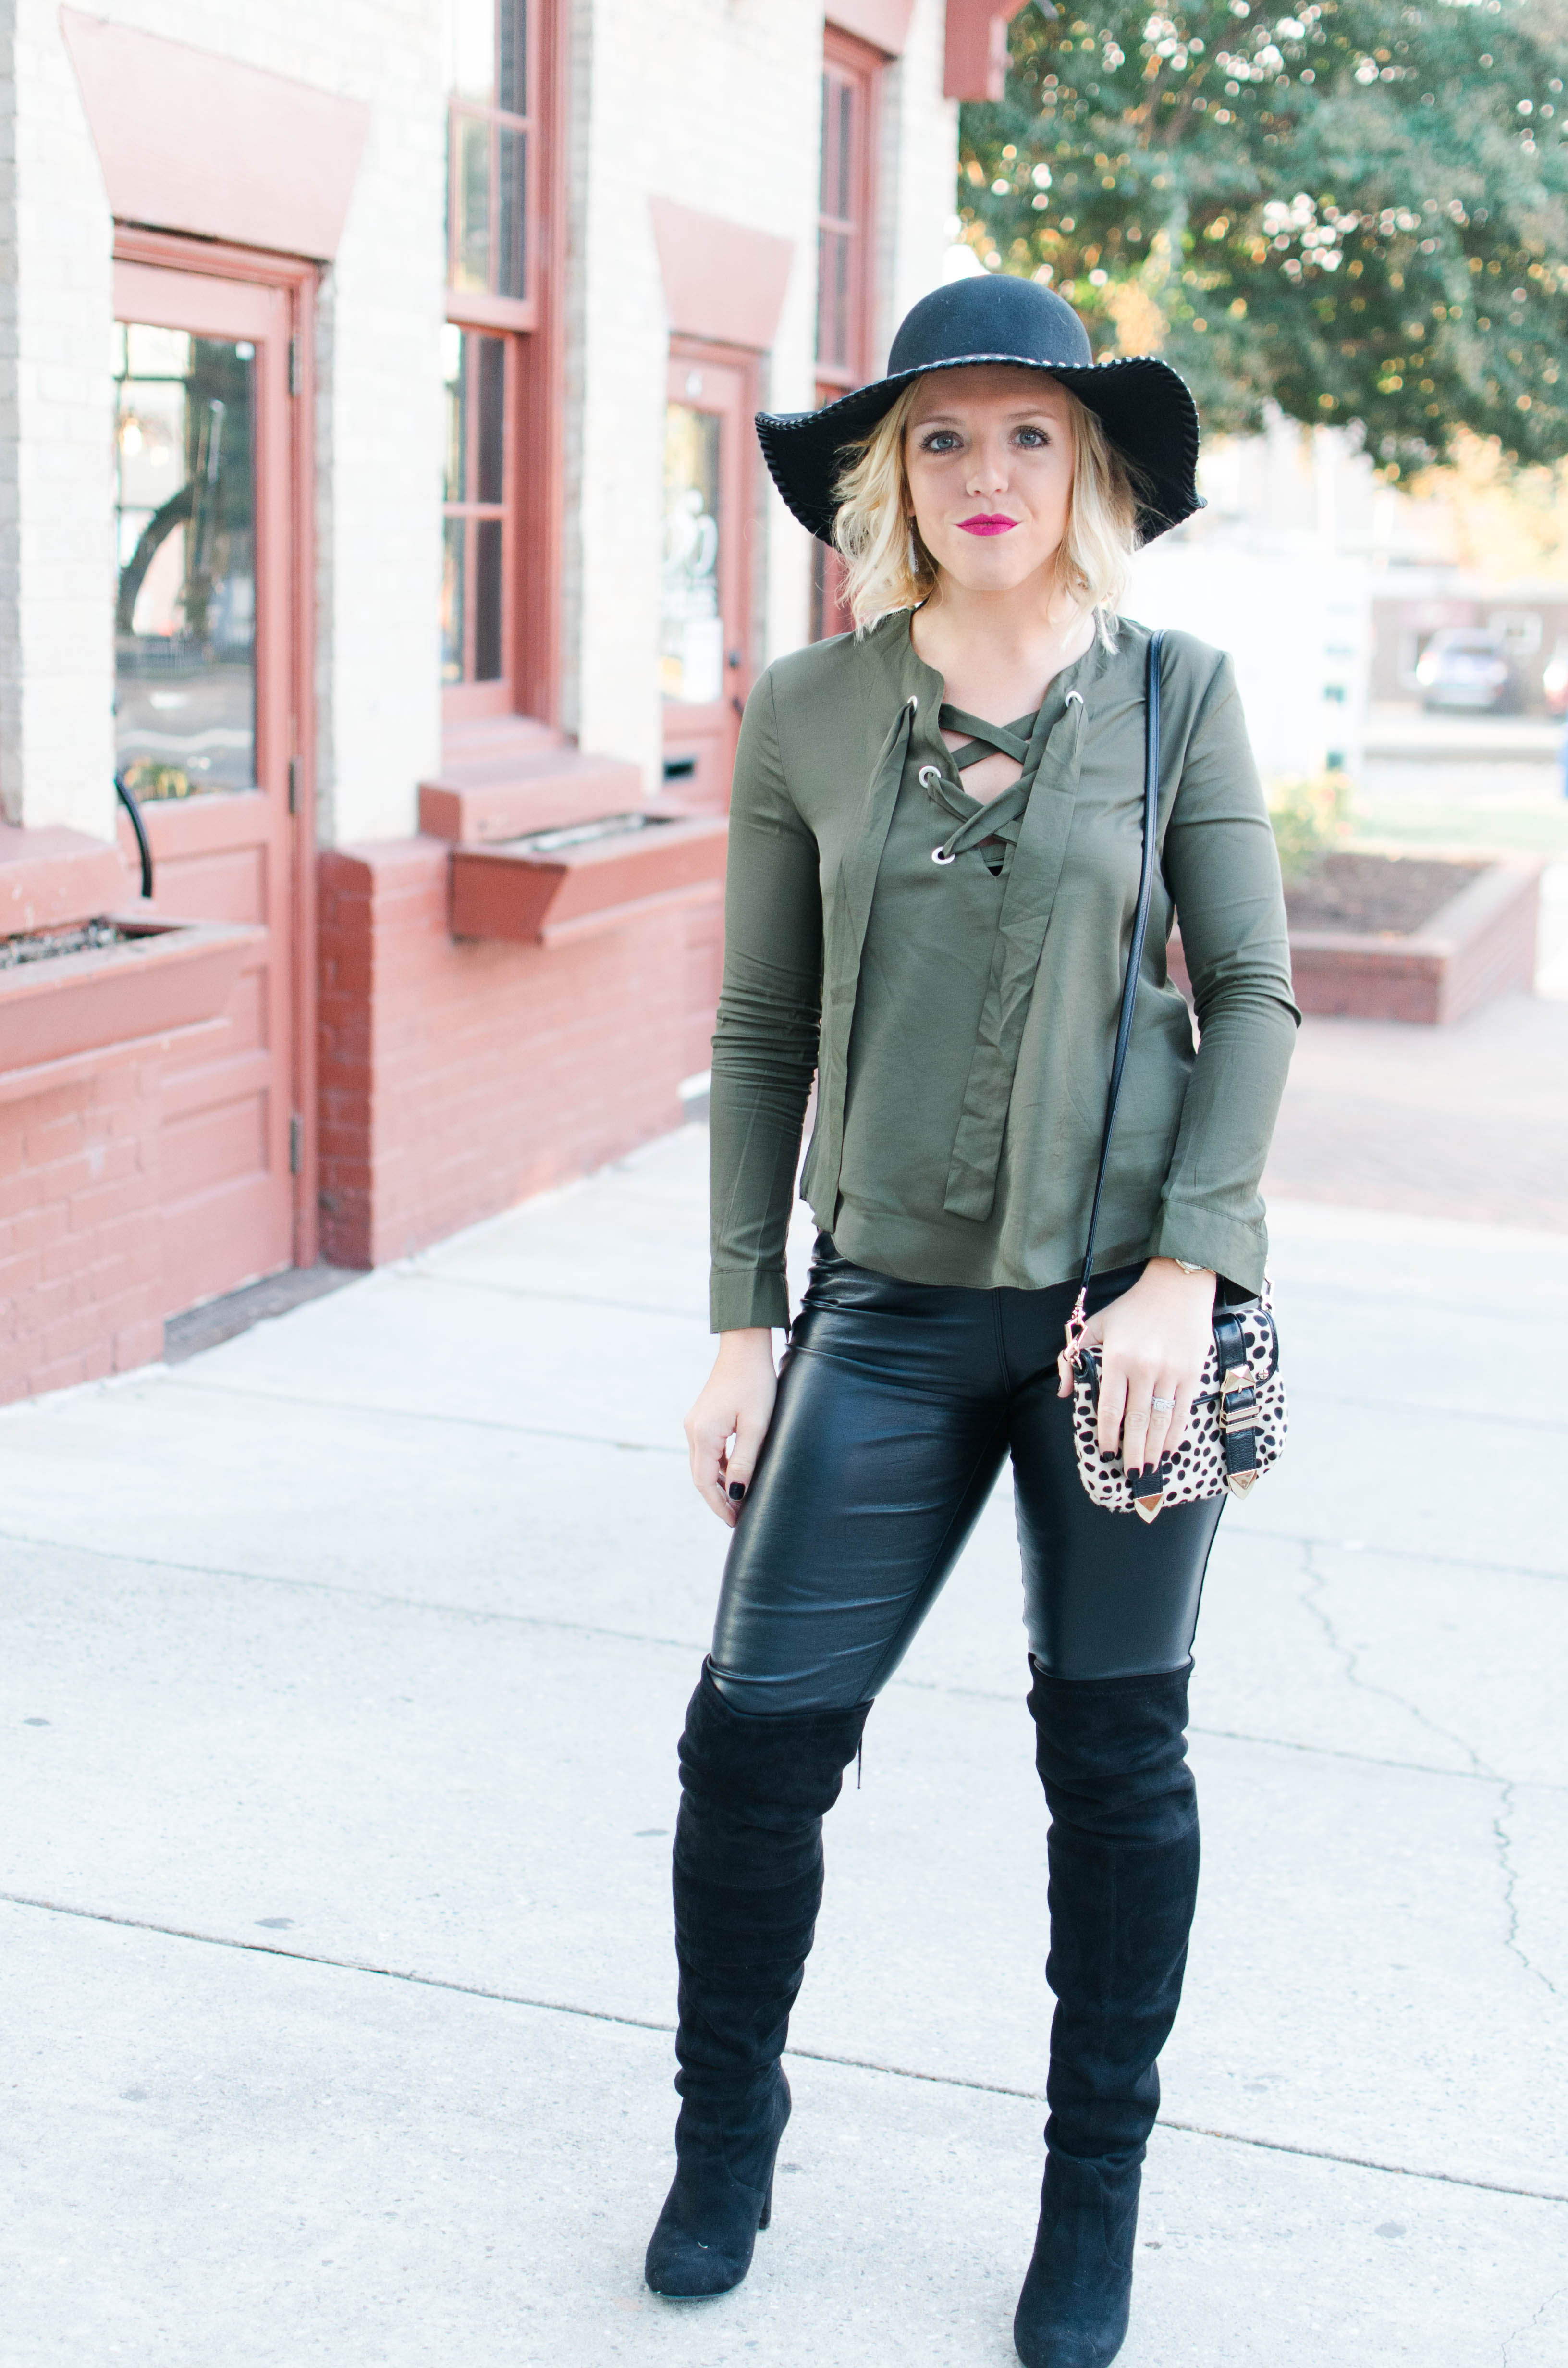 lace-up-top-and-hat